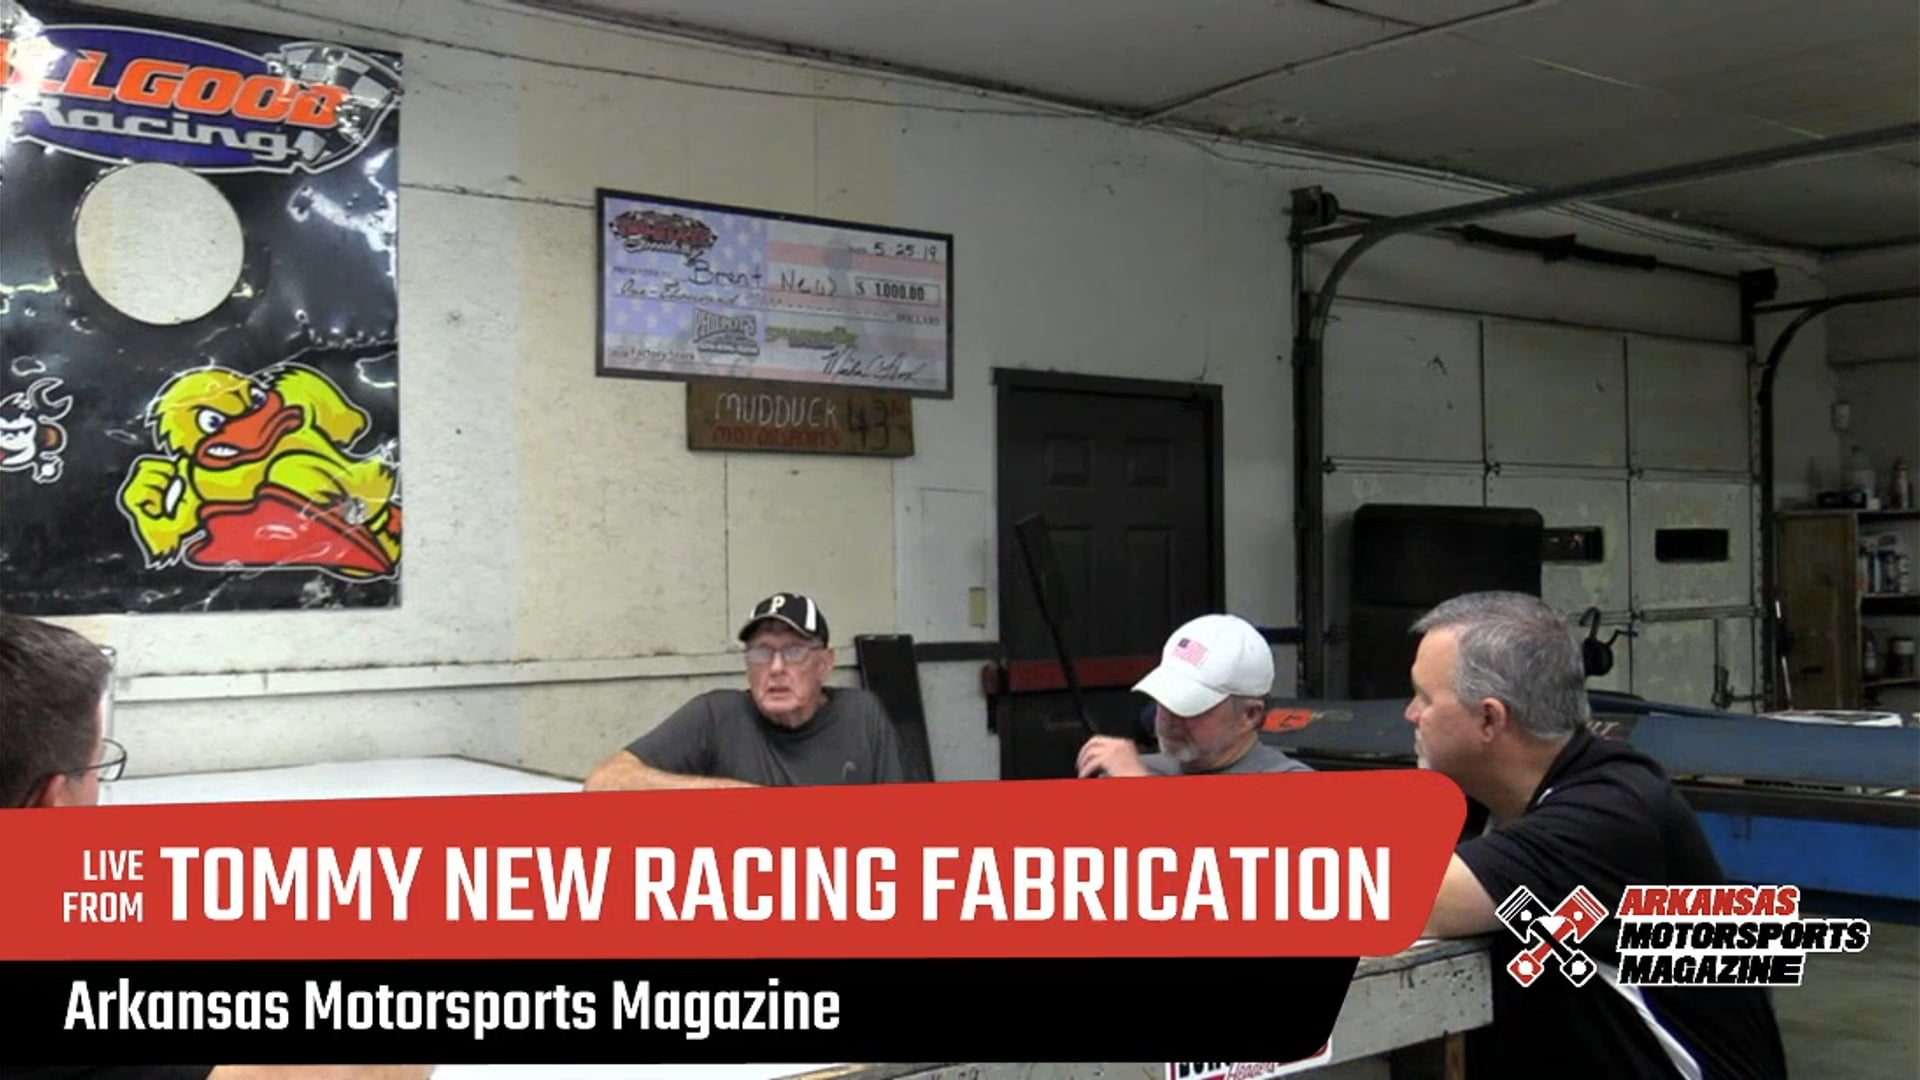 TUESDAY NIGHT TUNE UP - S1 E5 - Russellville Arkansas at Tommy New Racing Fabrication